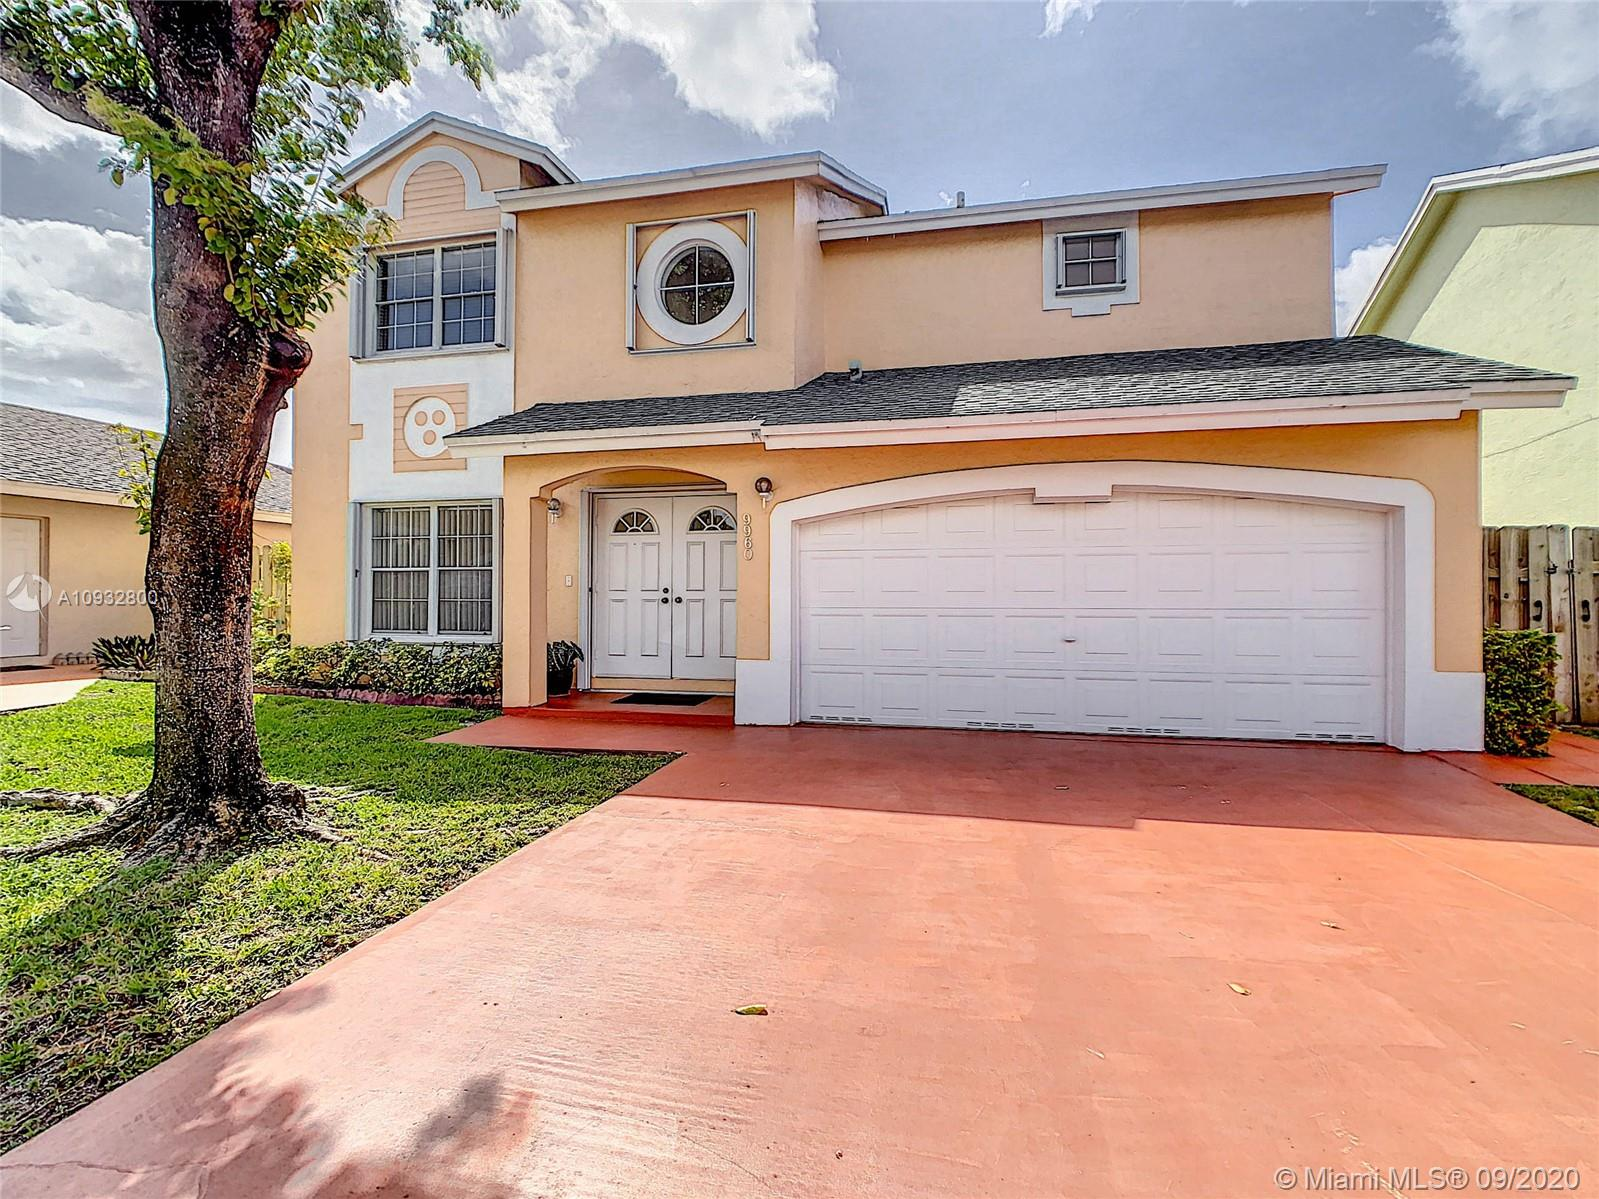 9960 NW 51st Ln, Doral, Florida 33178